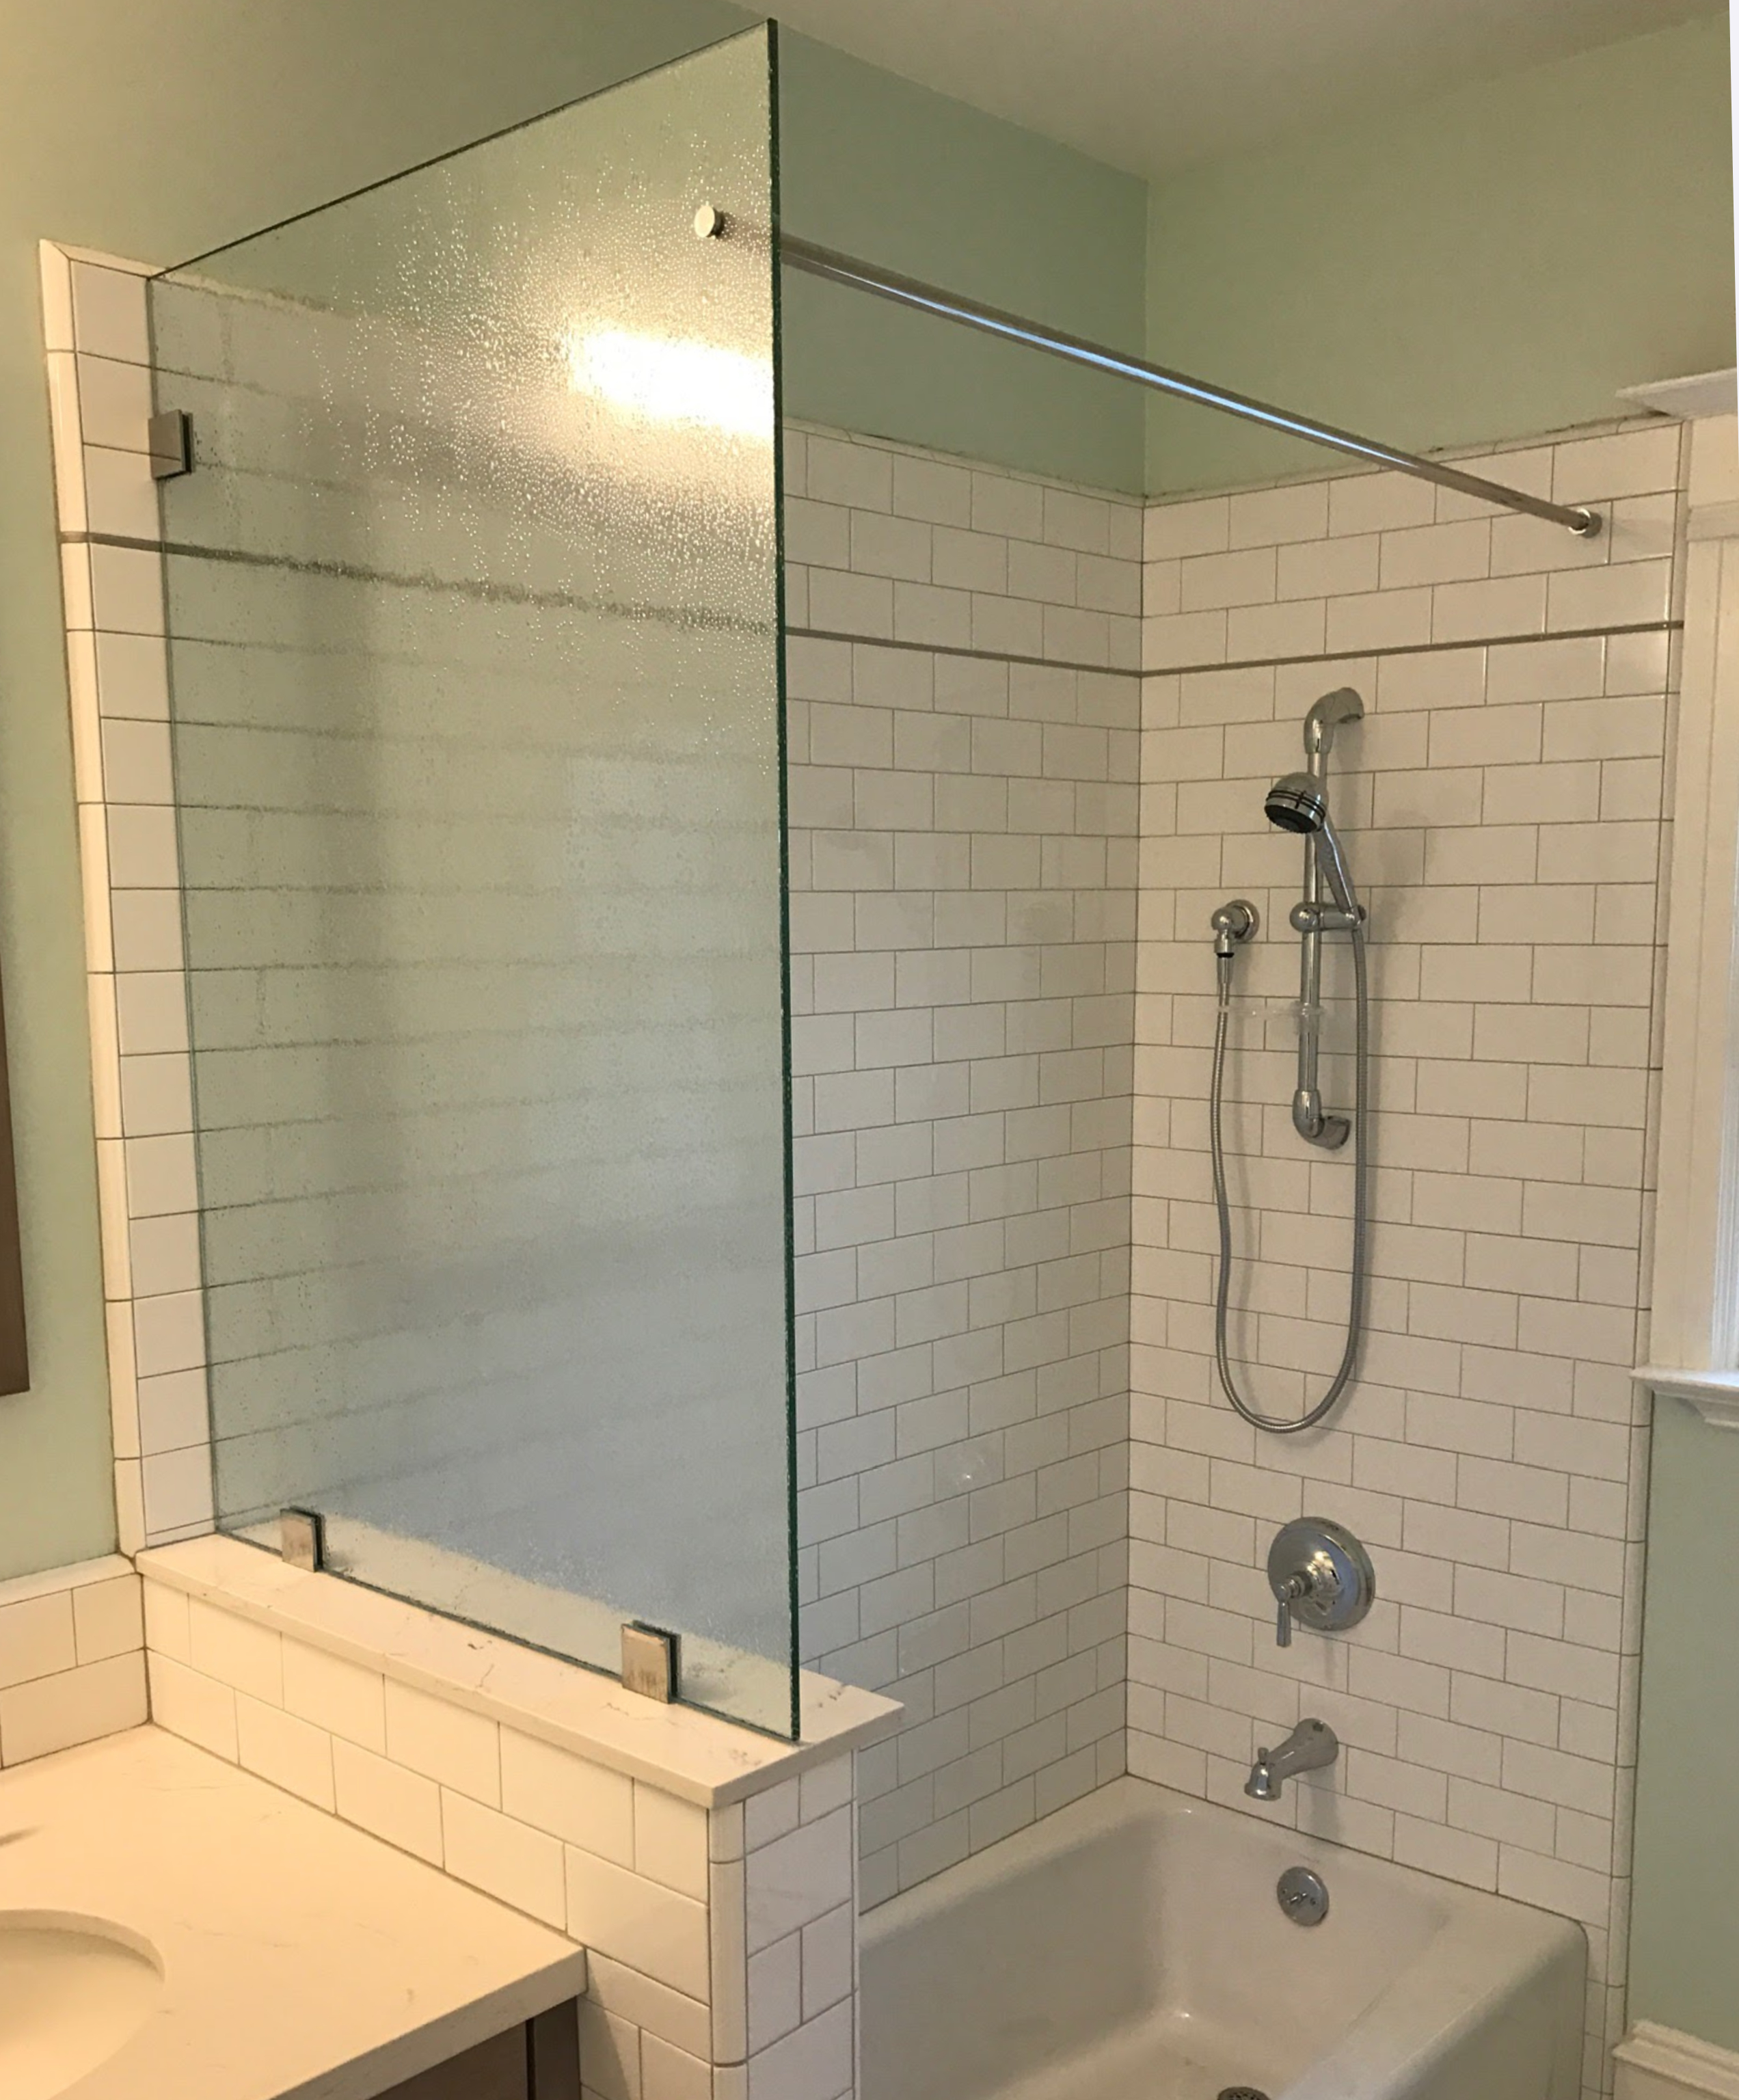 Pattern Shower Screen Through Glass Shower Curtain Rod